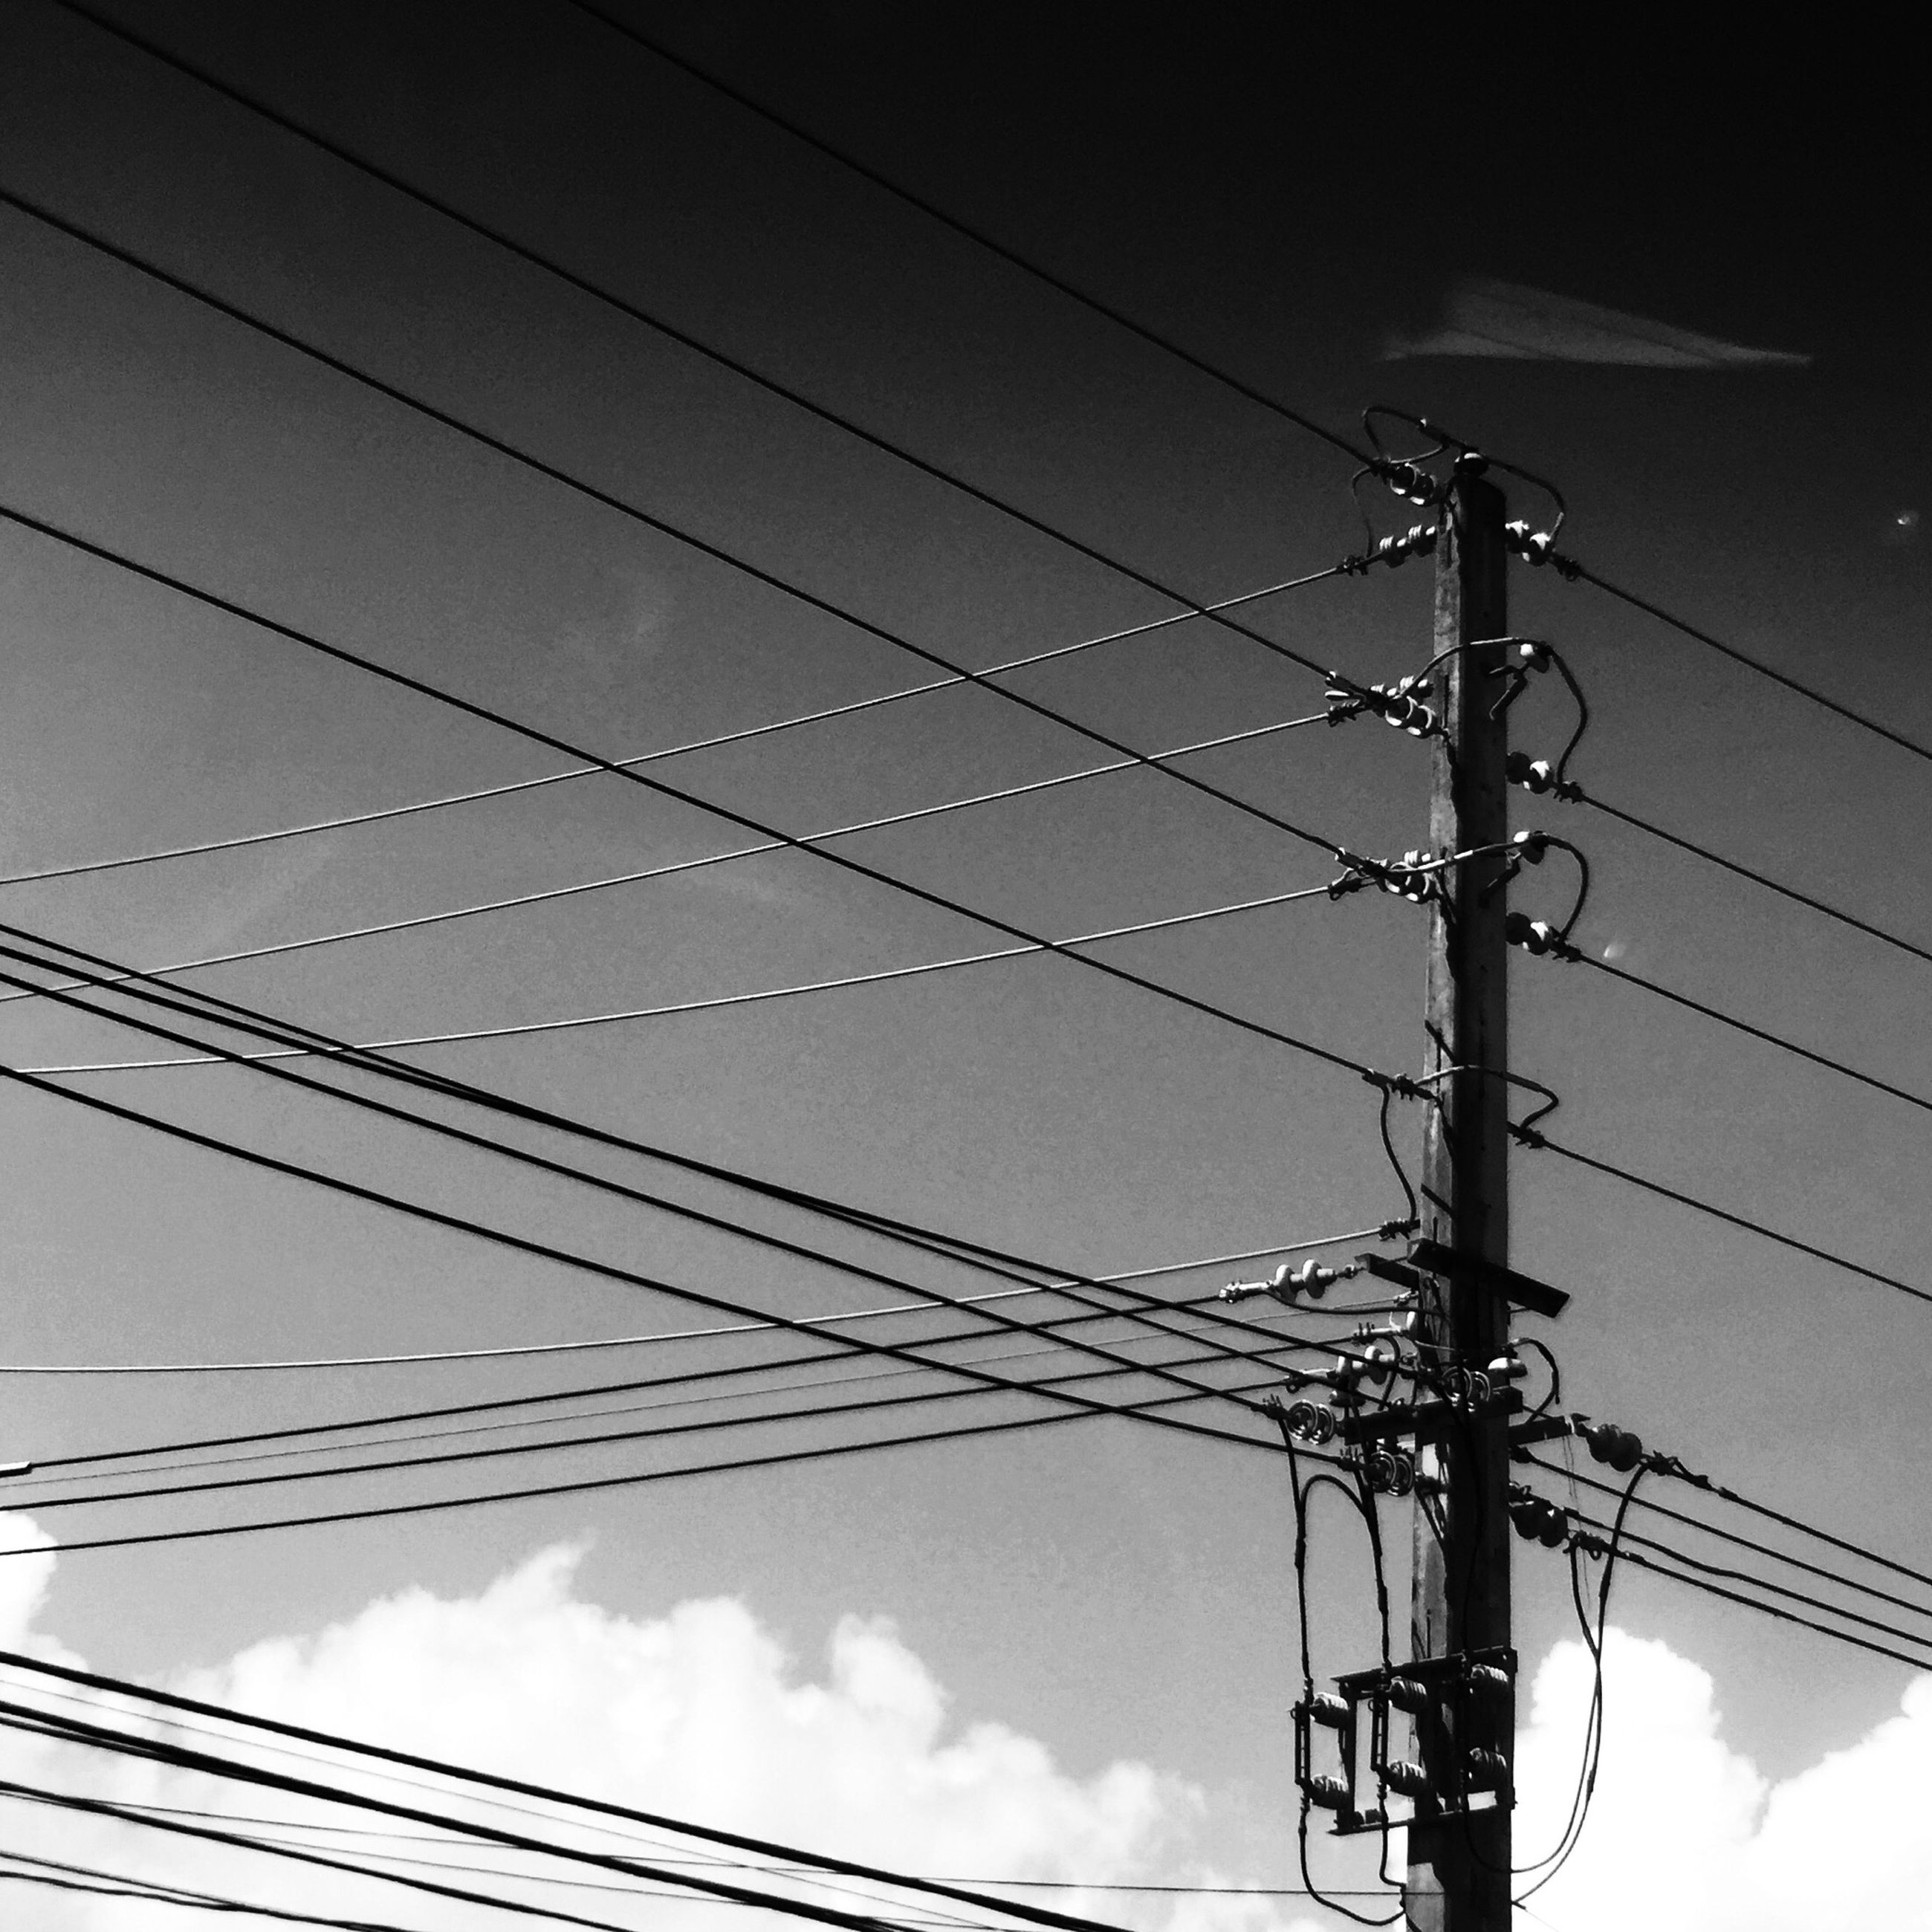 power line, low angle view, electricity, power supply, electricity pylon, connection, cable, fuel and power generation, sky, technology, power cable, silhouette, cloud - sky, complexity, cloudy, outdoors, no people, cloud, telephone pole, pole